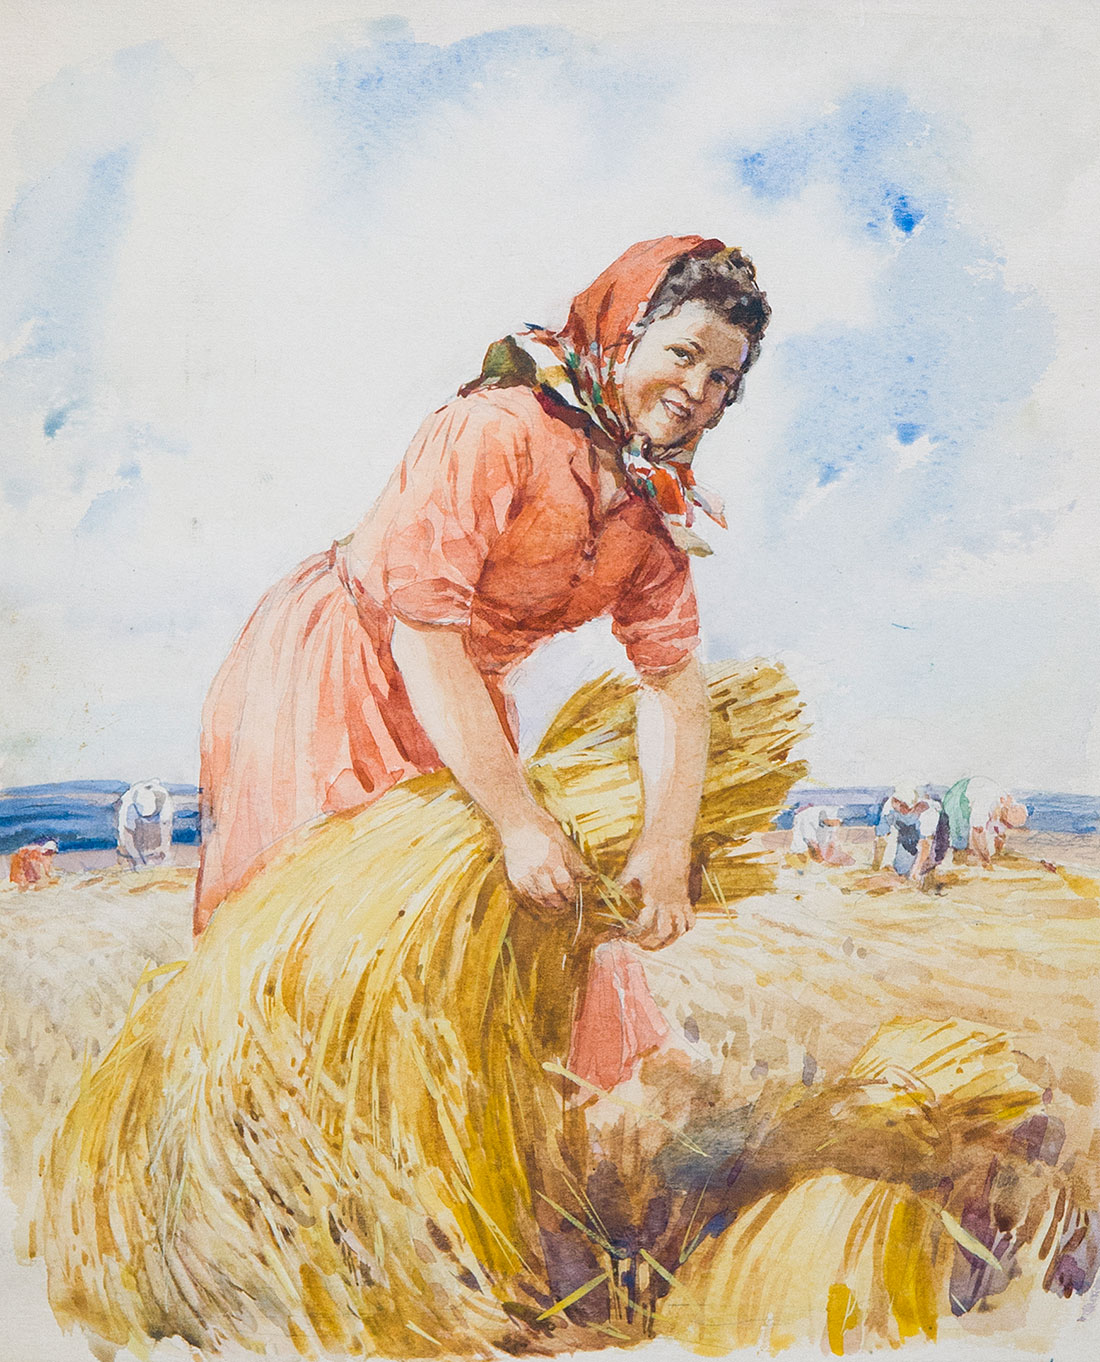 Harvest. Illustration for the magazine